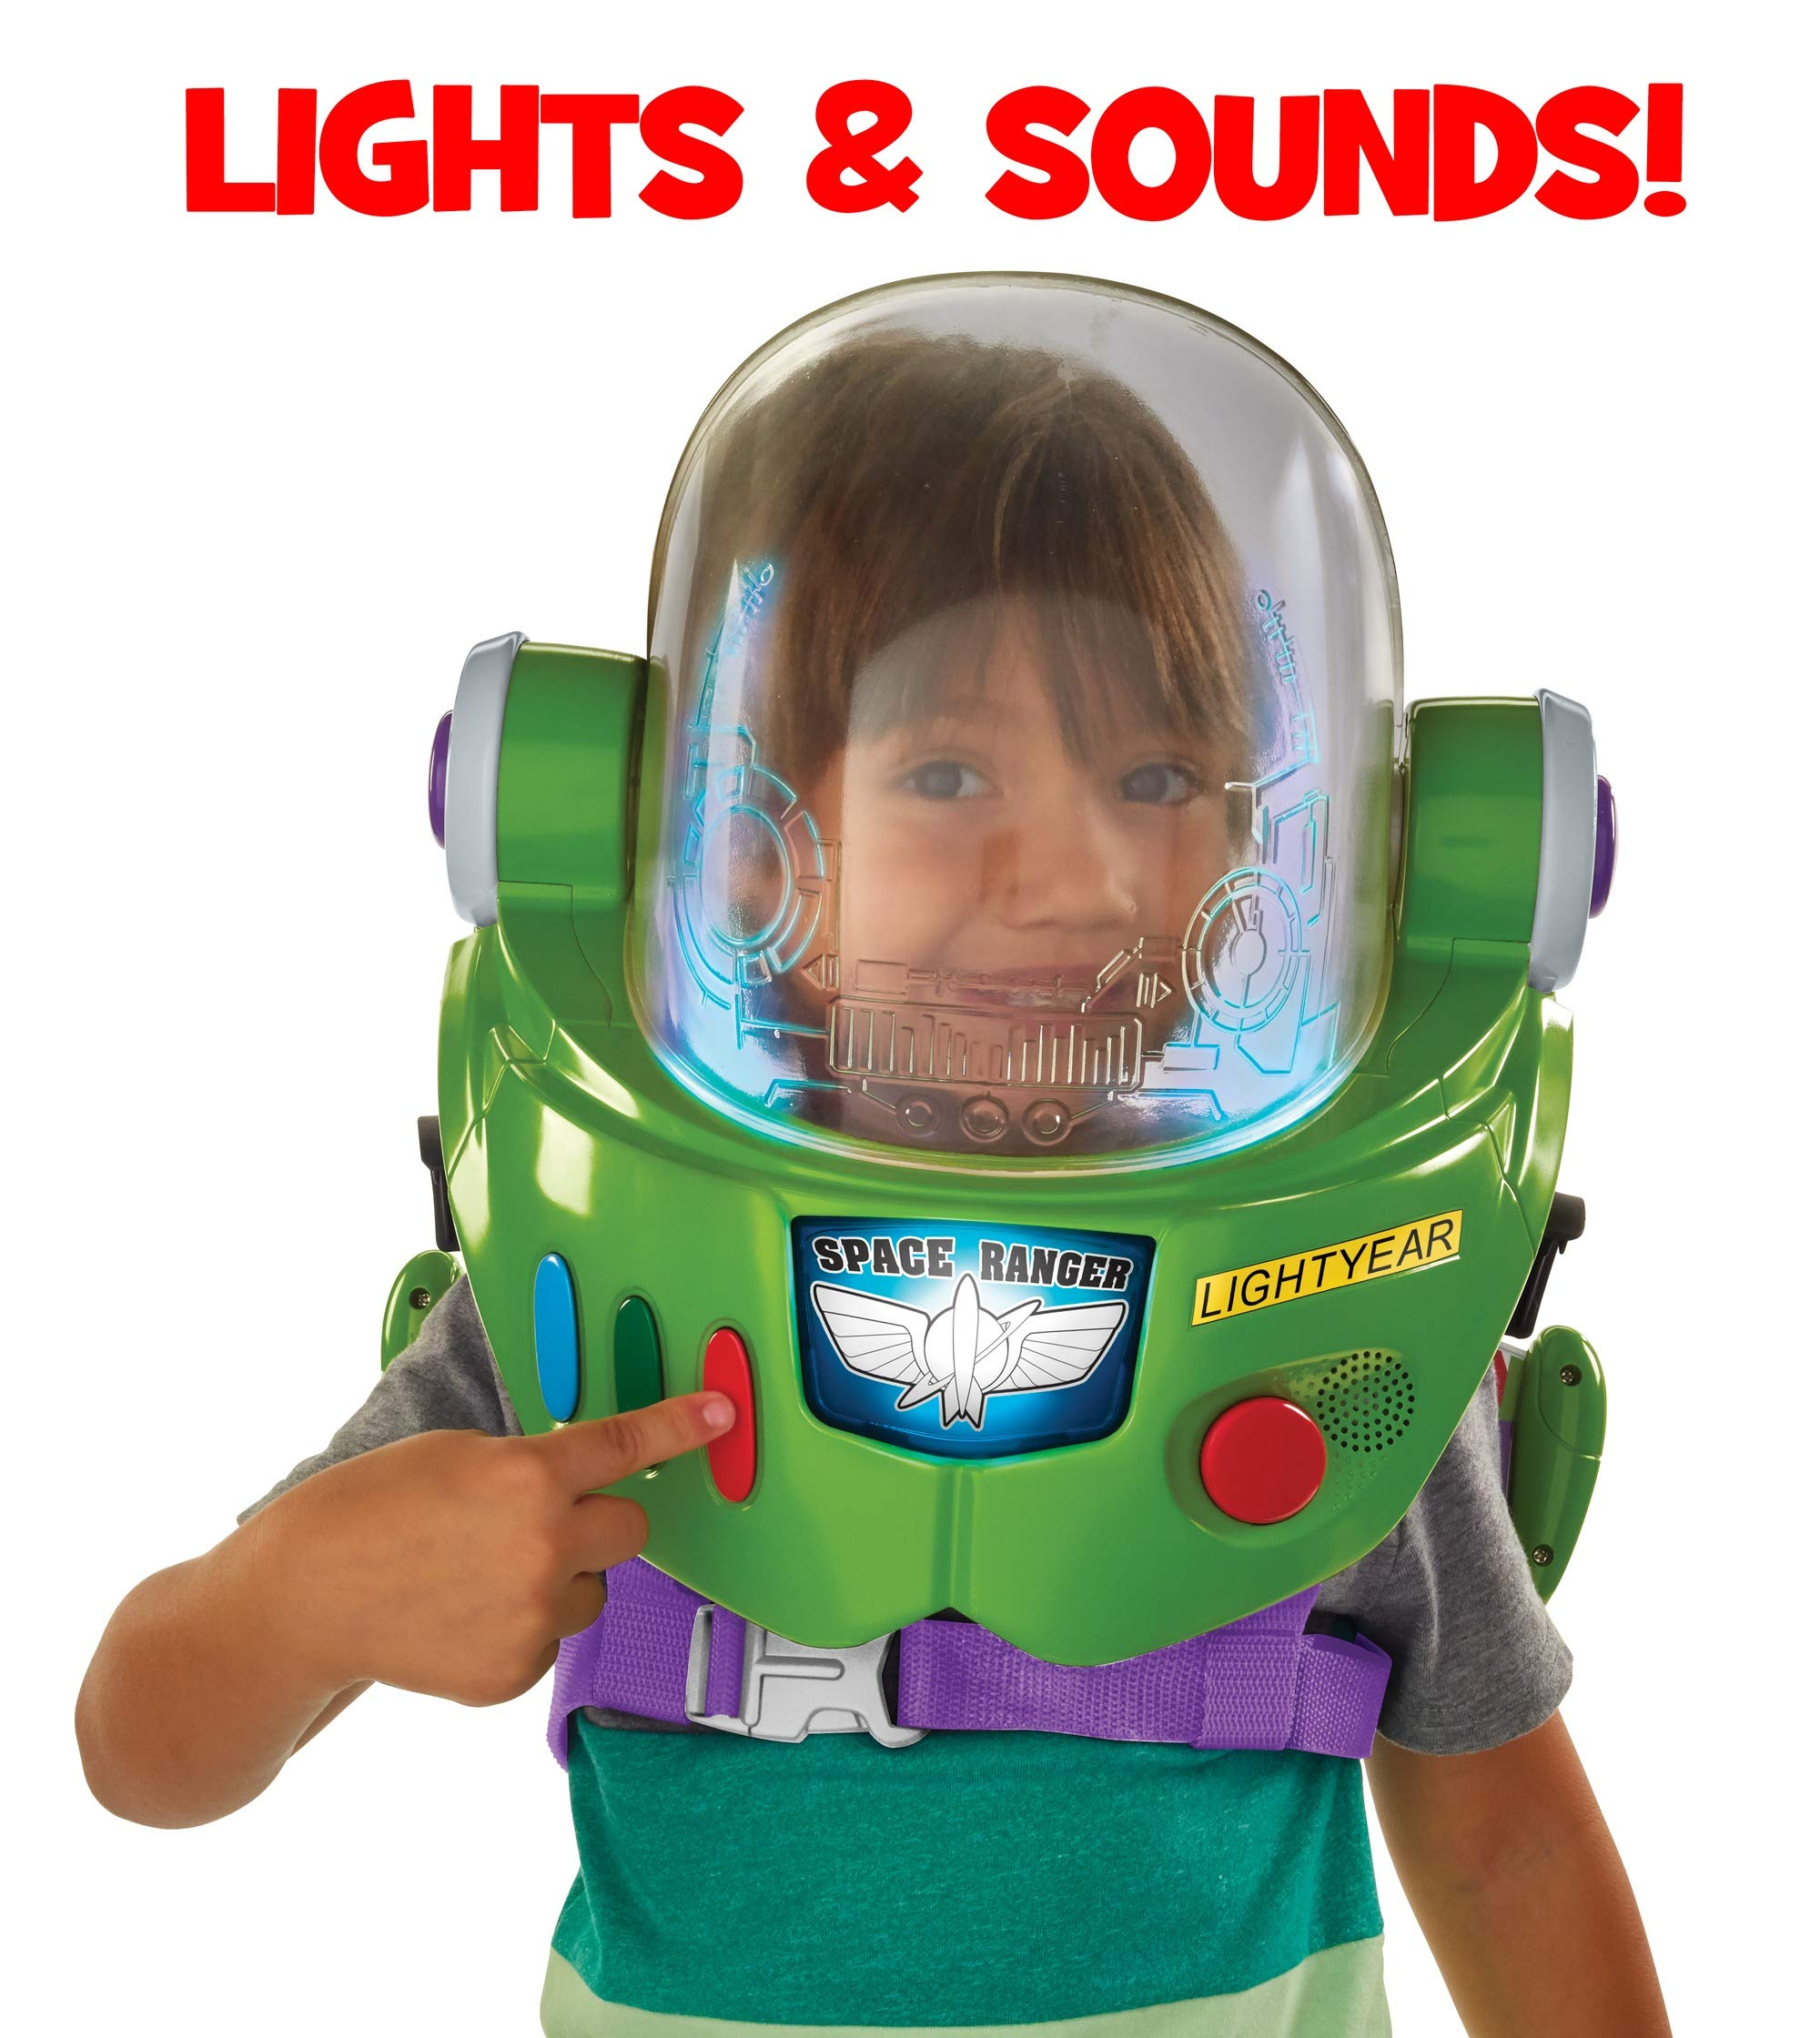 Toy Story Disney Pixar 4 Buzz Lightyear Space Ranger Armor with Jet Pack by Toy Story (Image #5)